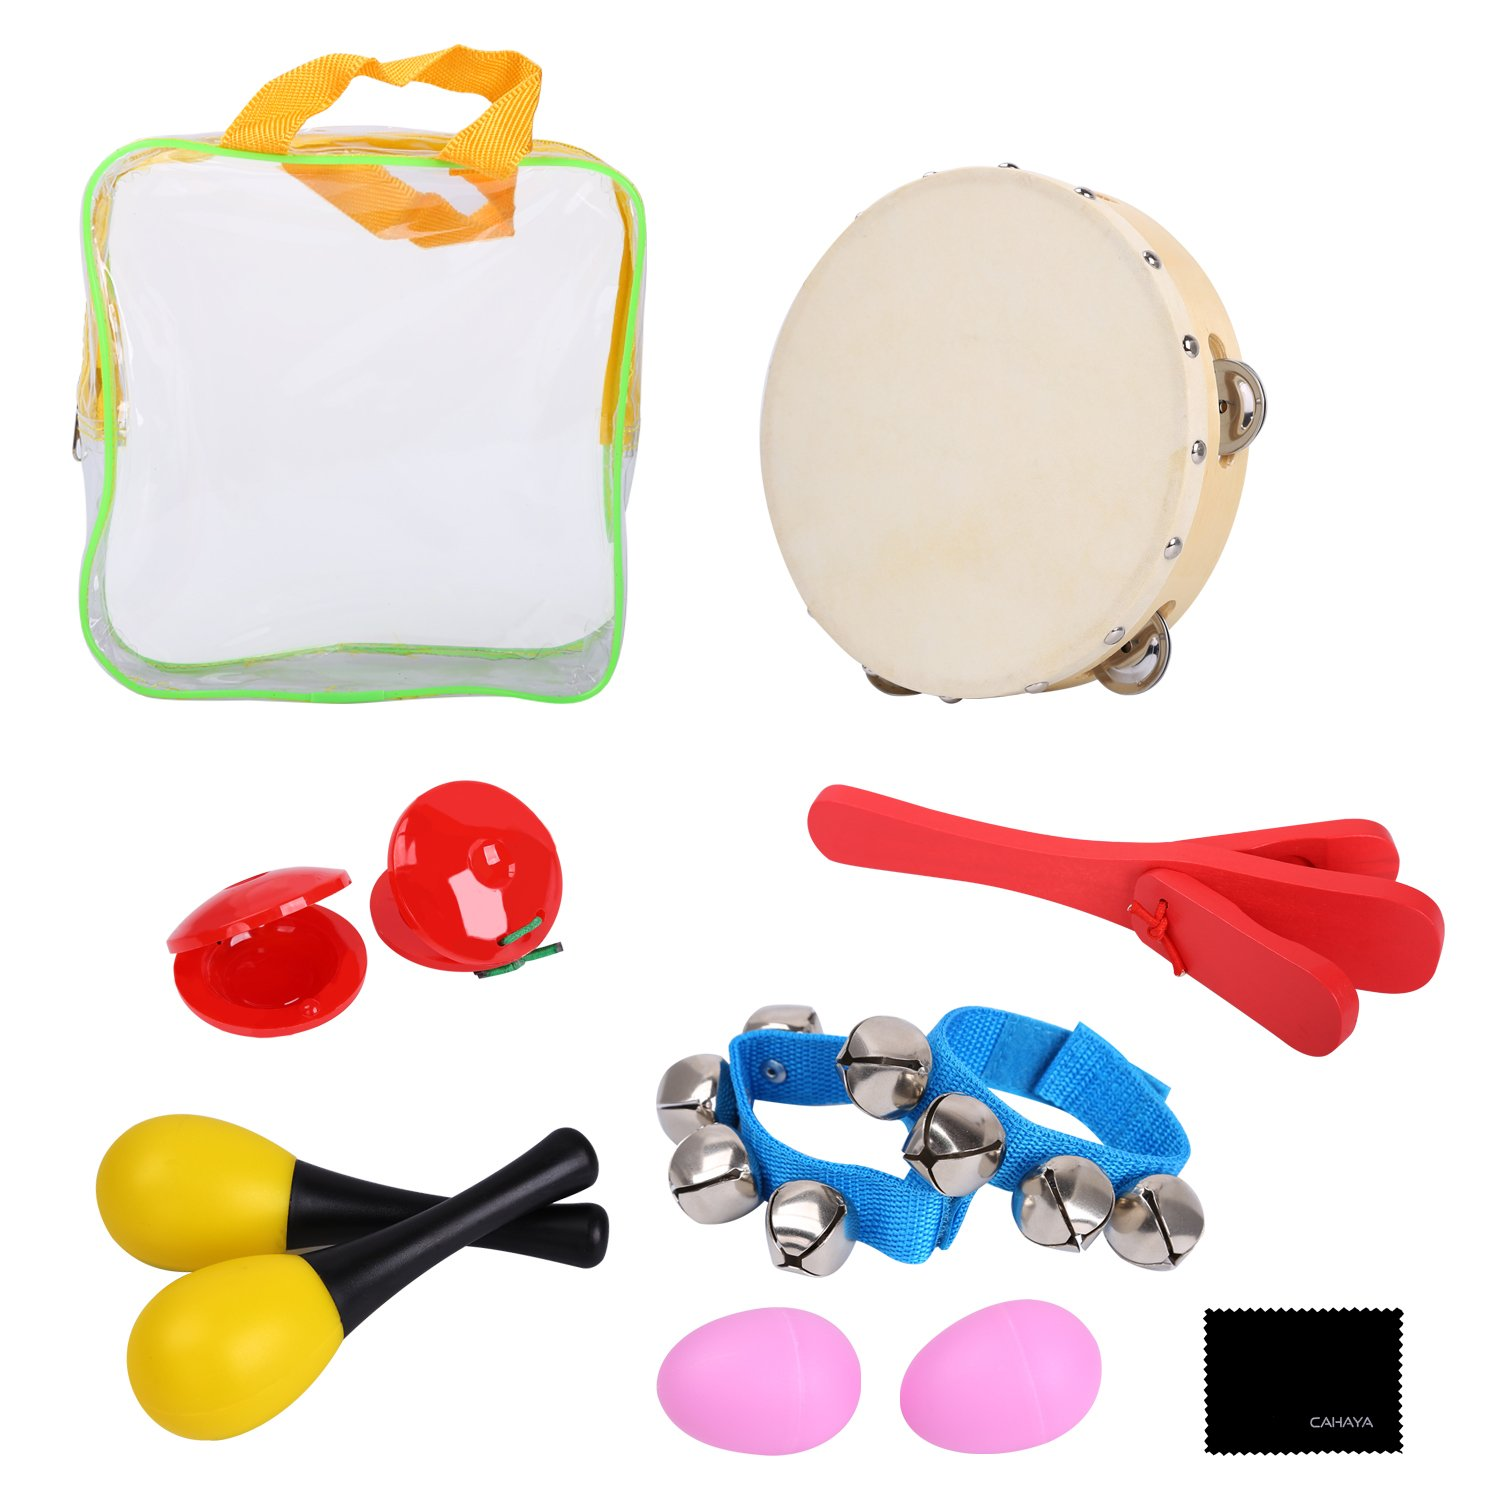 CAHAYA Percussion Sets Enlighten Toys with Tambourine Bells Maracas Castanets Hand Bell Ankle Bell Egg Shaker for Toddles CY0094-CA